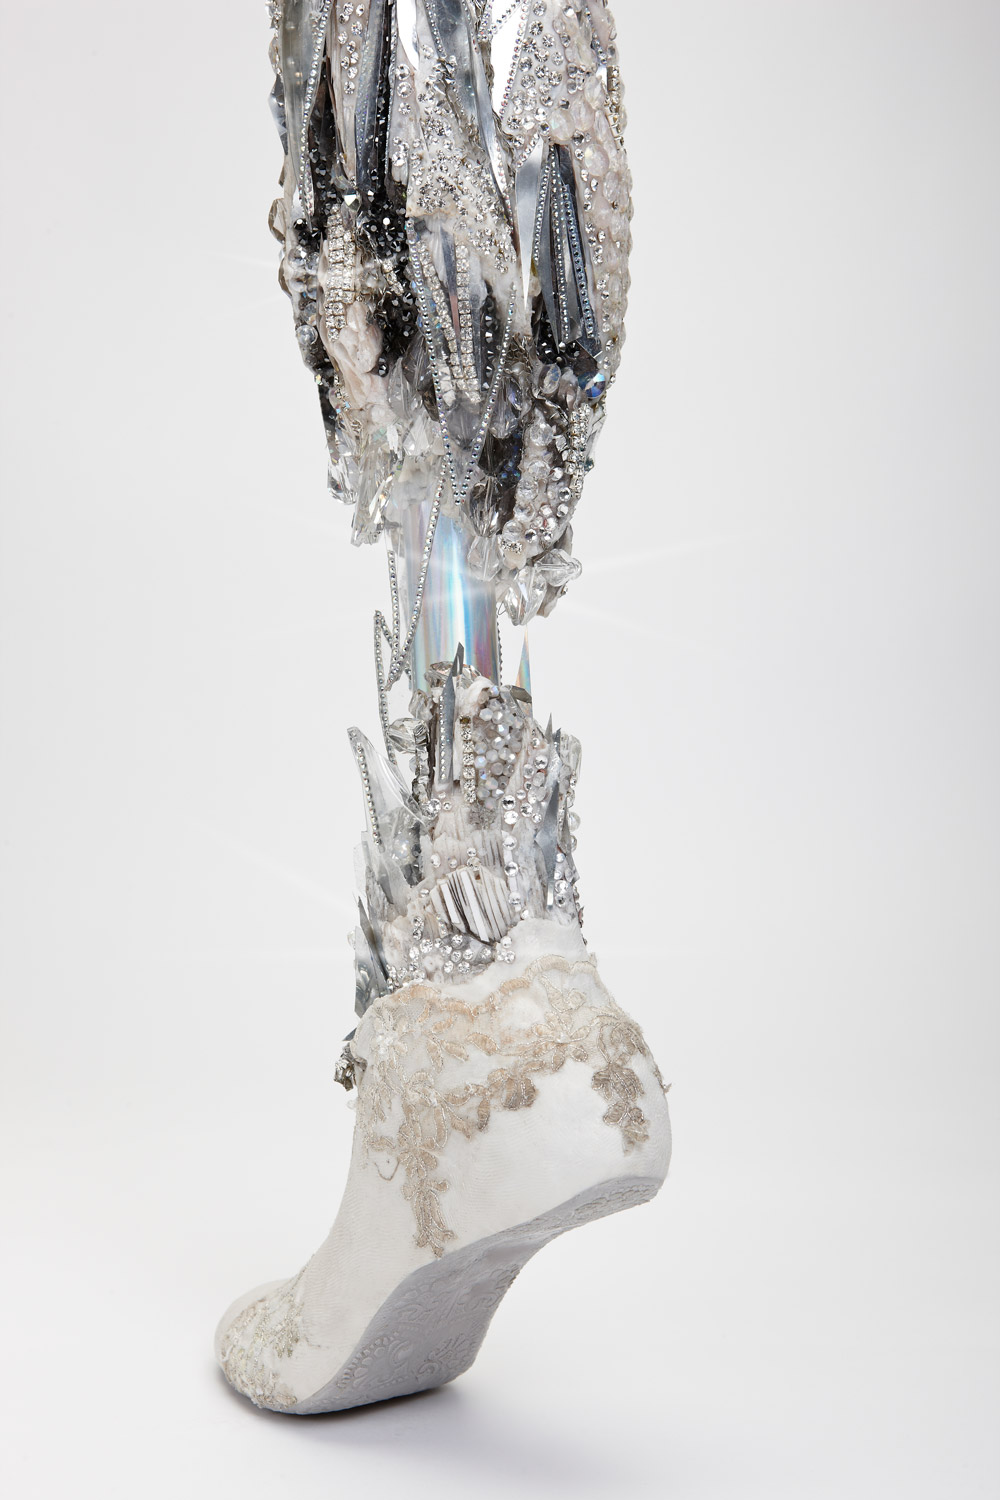 The Alternative Limb Project-Visual Atelier 8-Prothesis-design-technology-innovative-2.jpg